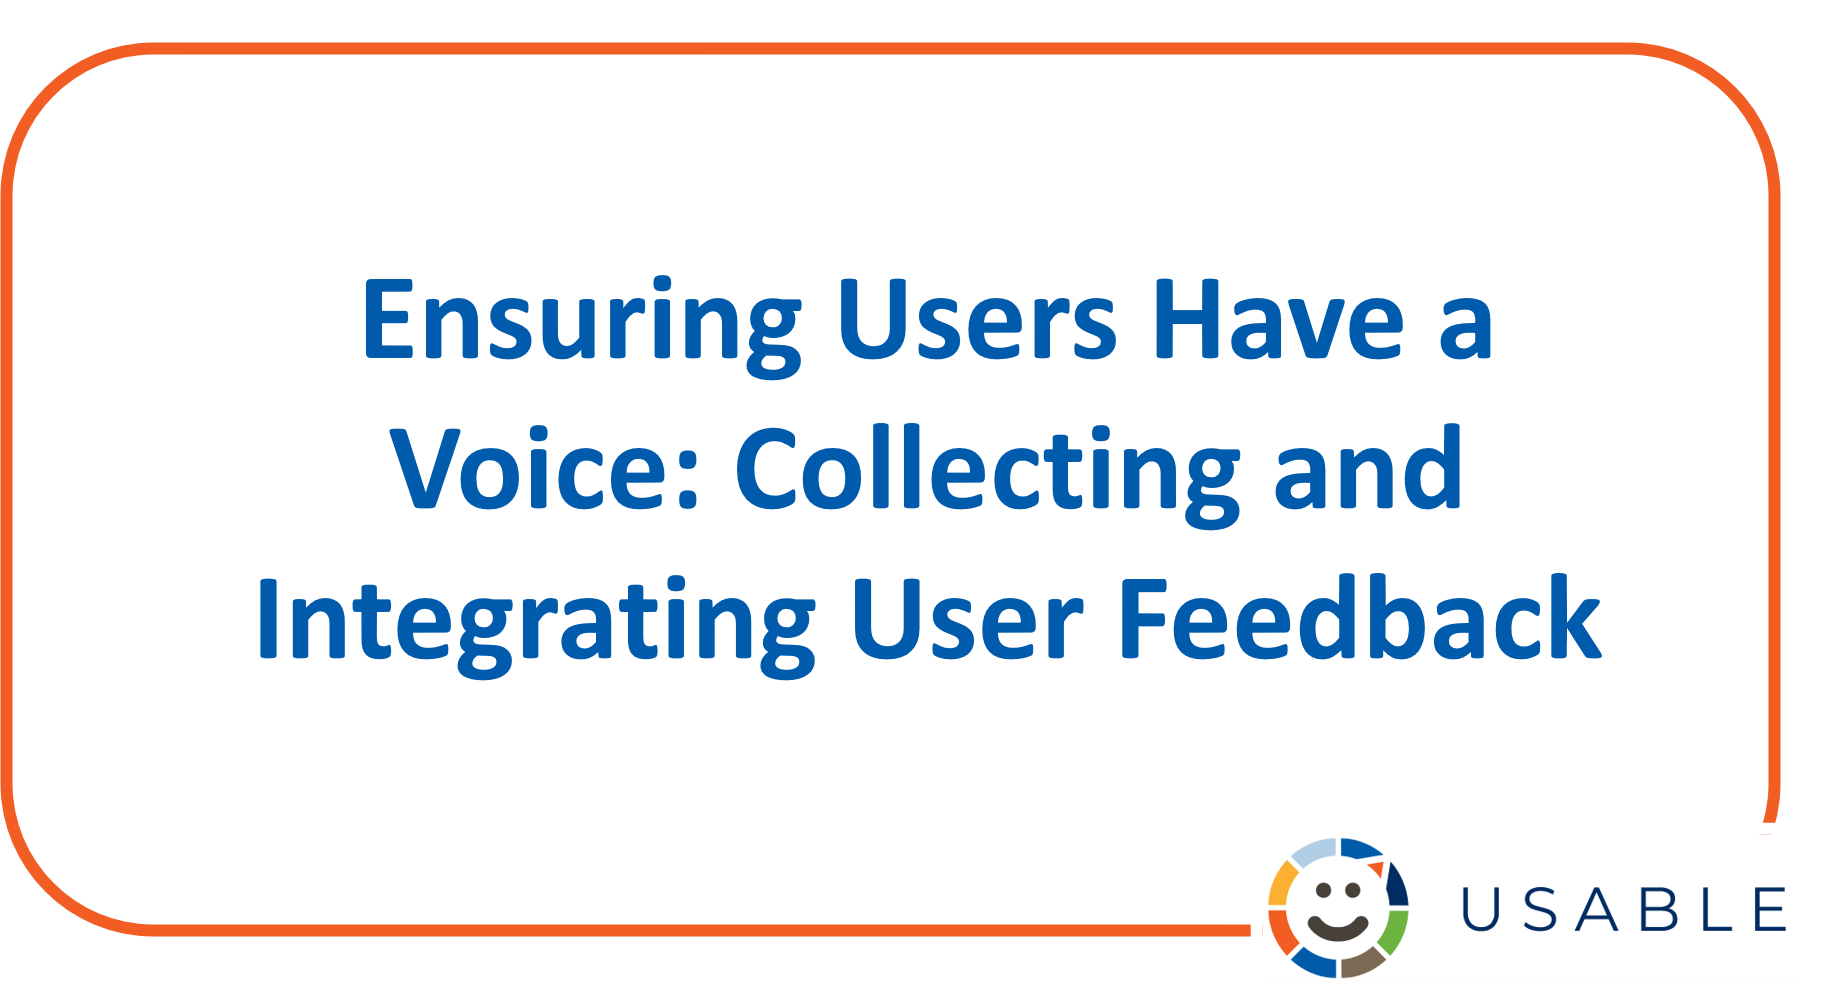 Image with title Ensuring Users Have a Voice: Collecting and Integrating User Feedback in text